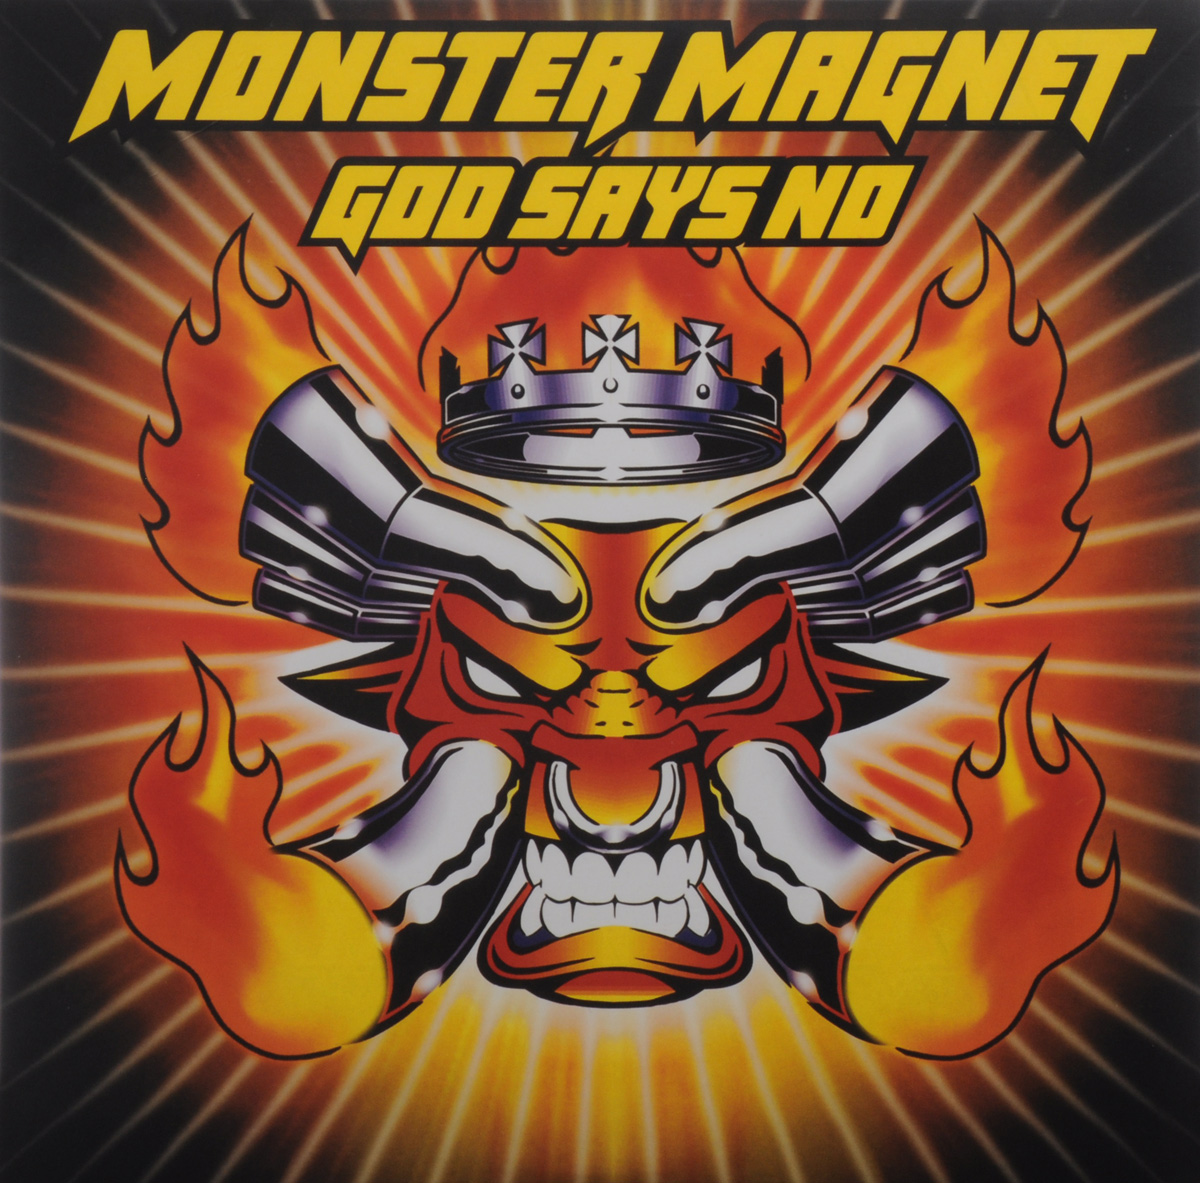 цена на Monster Magnet Monster Magnet. God Says No (2 LP)